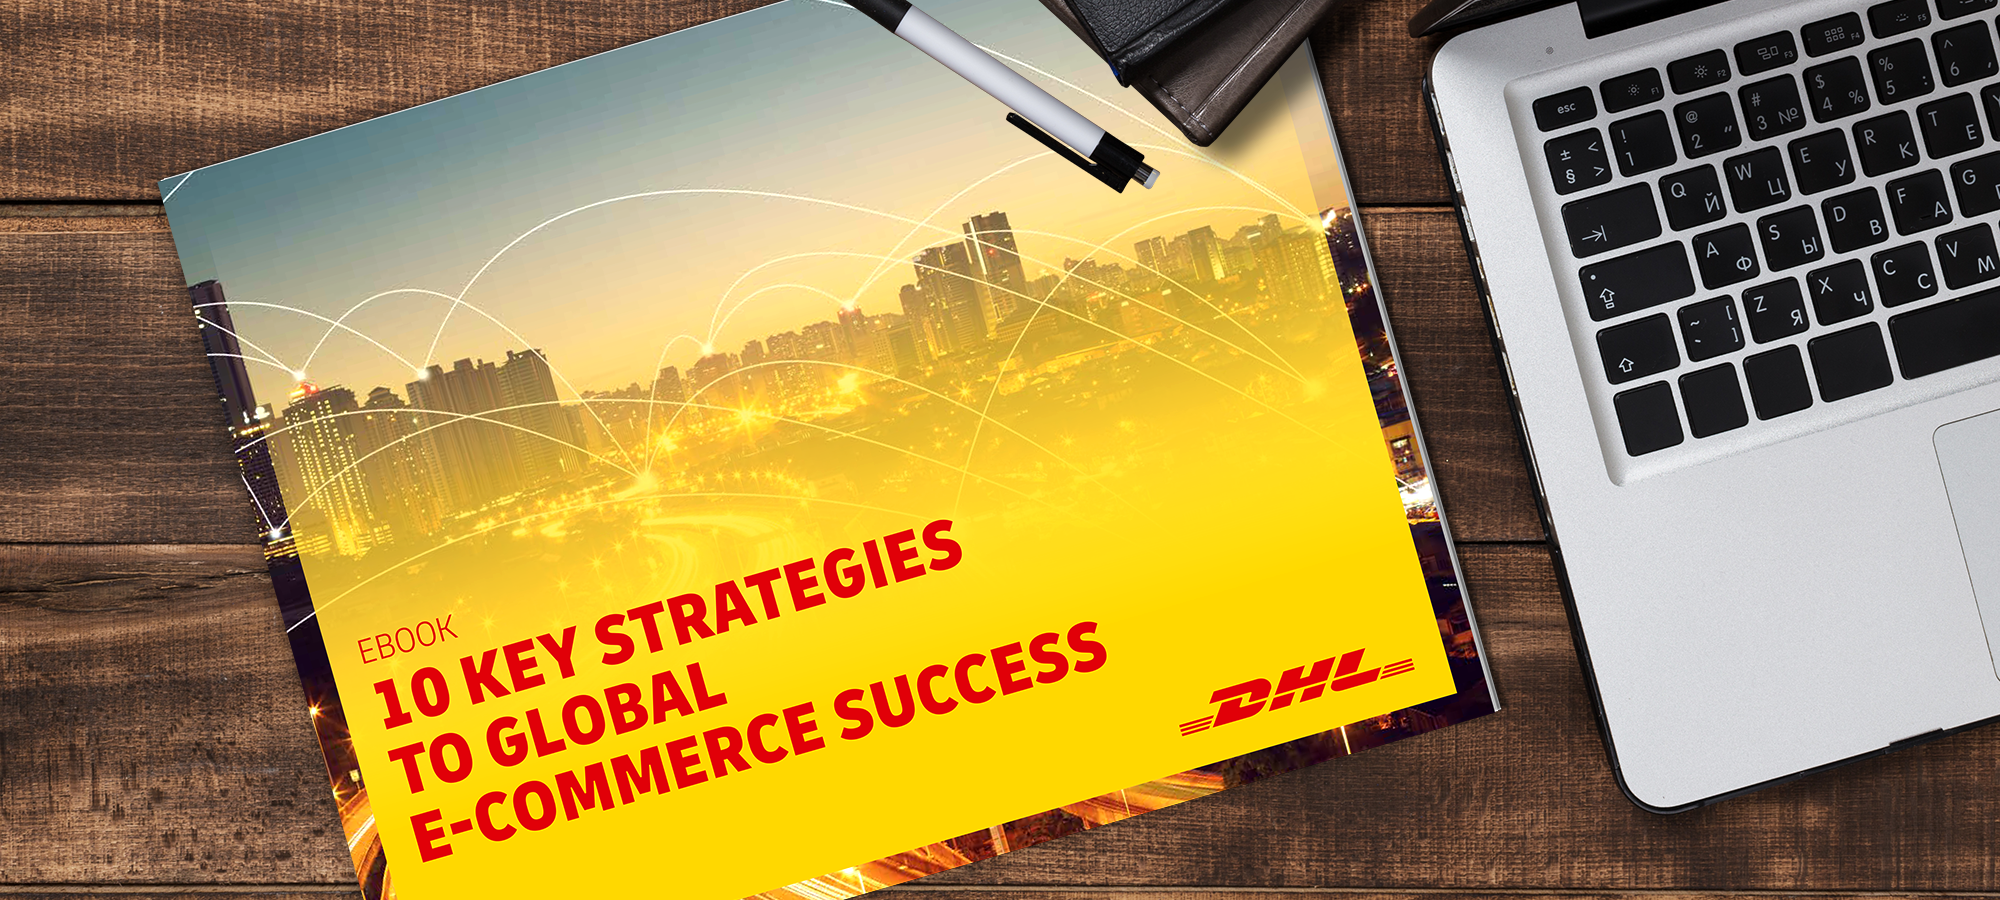 10 Key Strategies to E-Commerce Success eBook